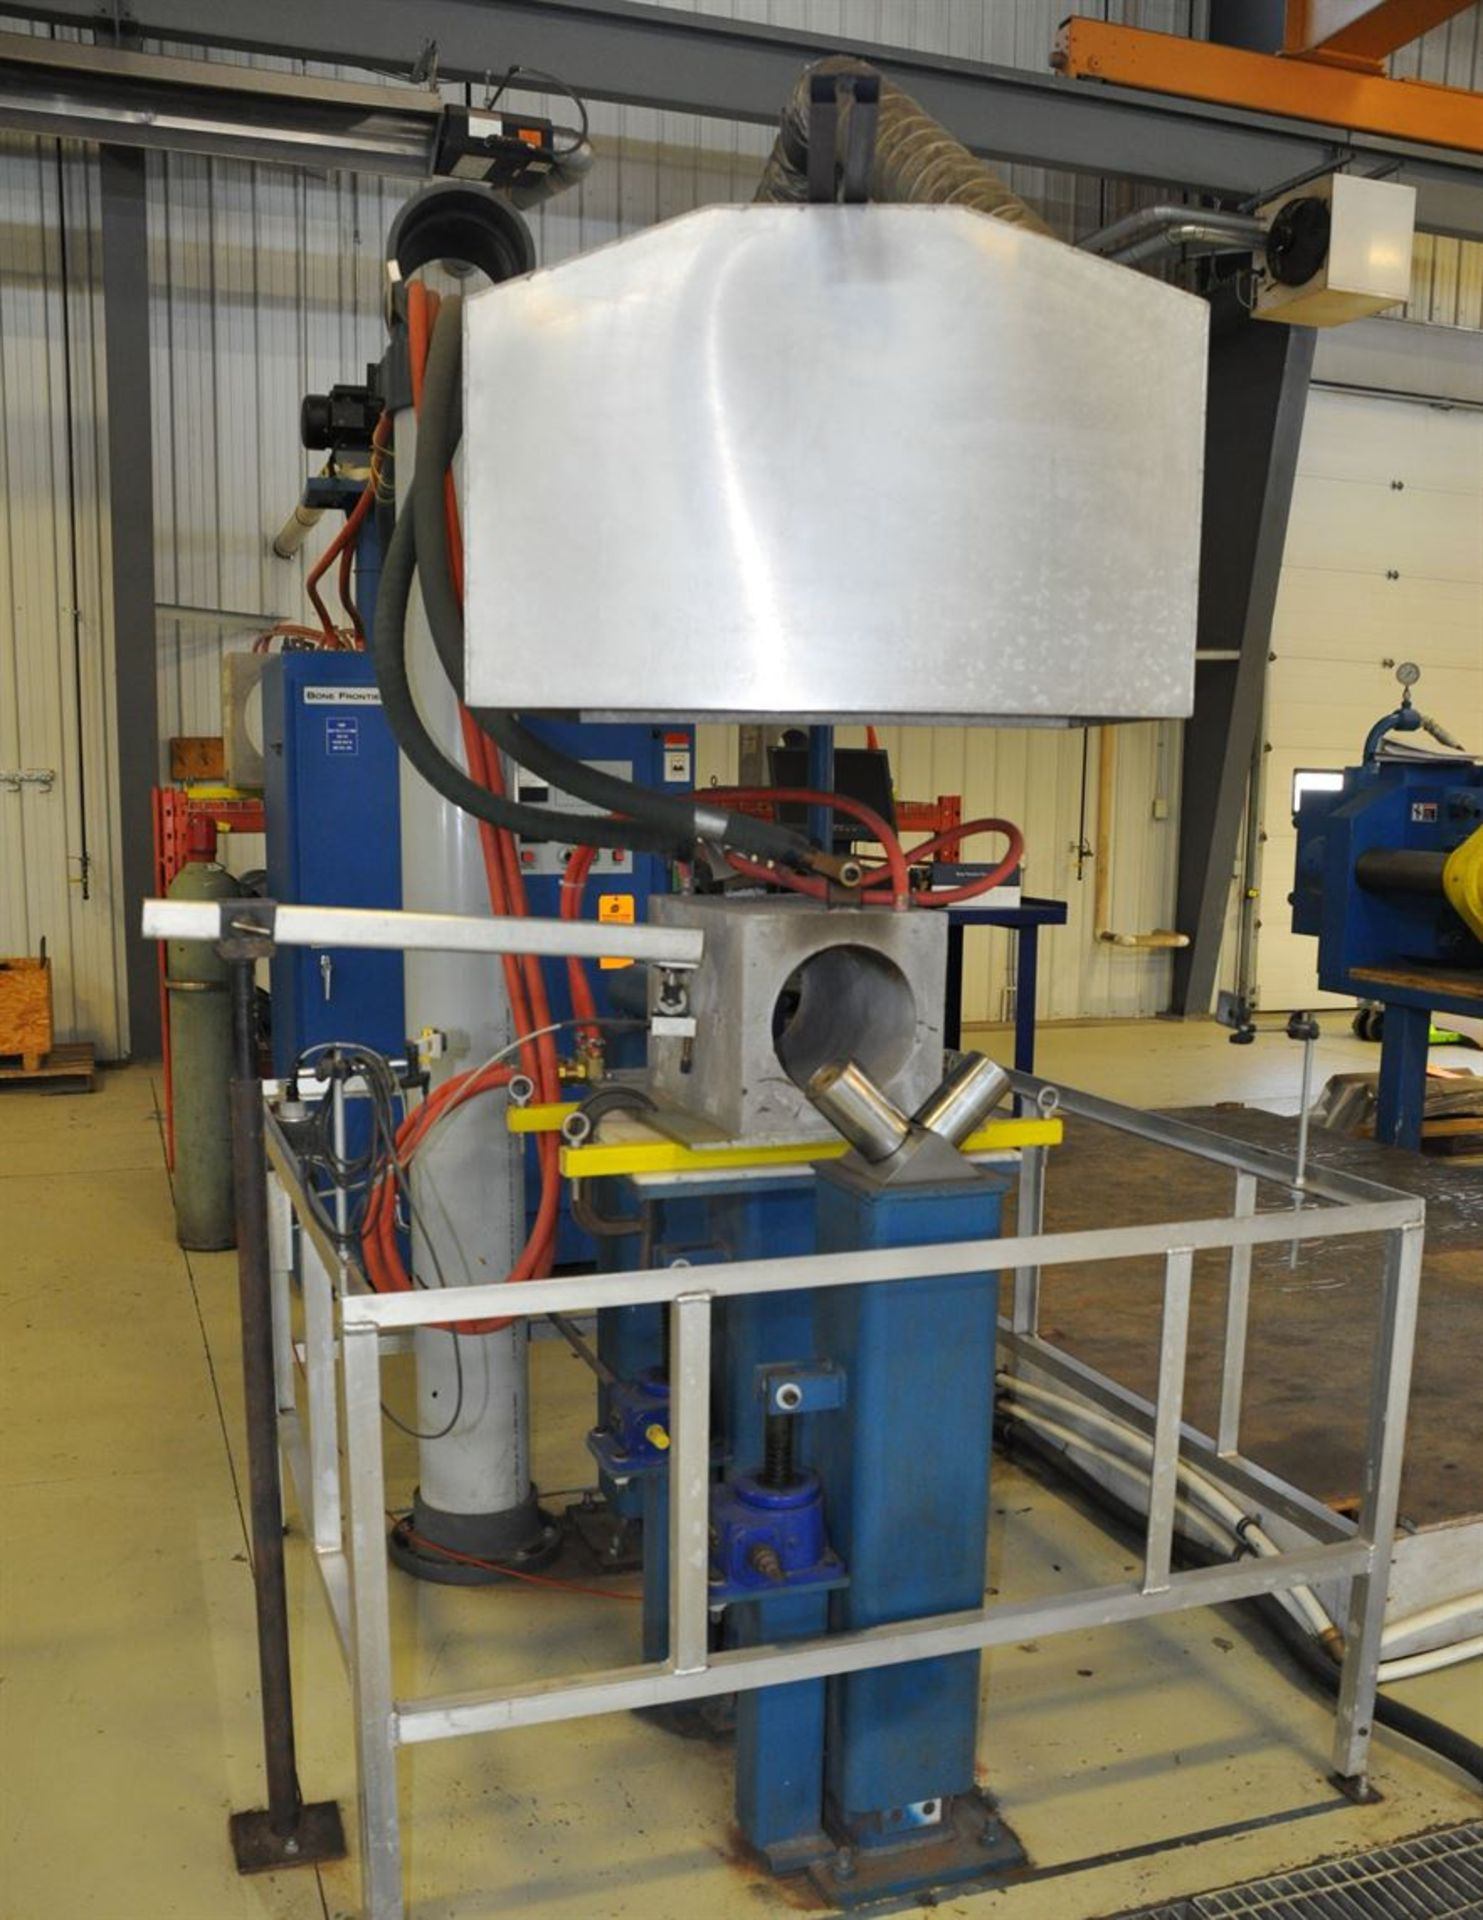 2012 BONE FRONTIER COMPANY CNC TS5L 75 3-10SUM Induction Power Stress Relieving Unit, s/n 730, w/ - Image 2 of 6